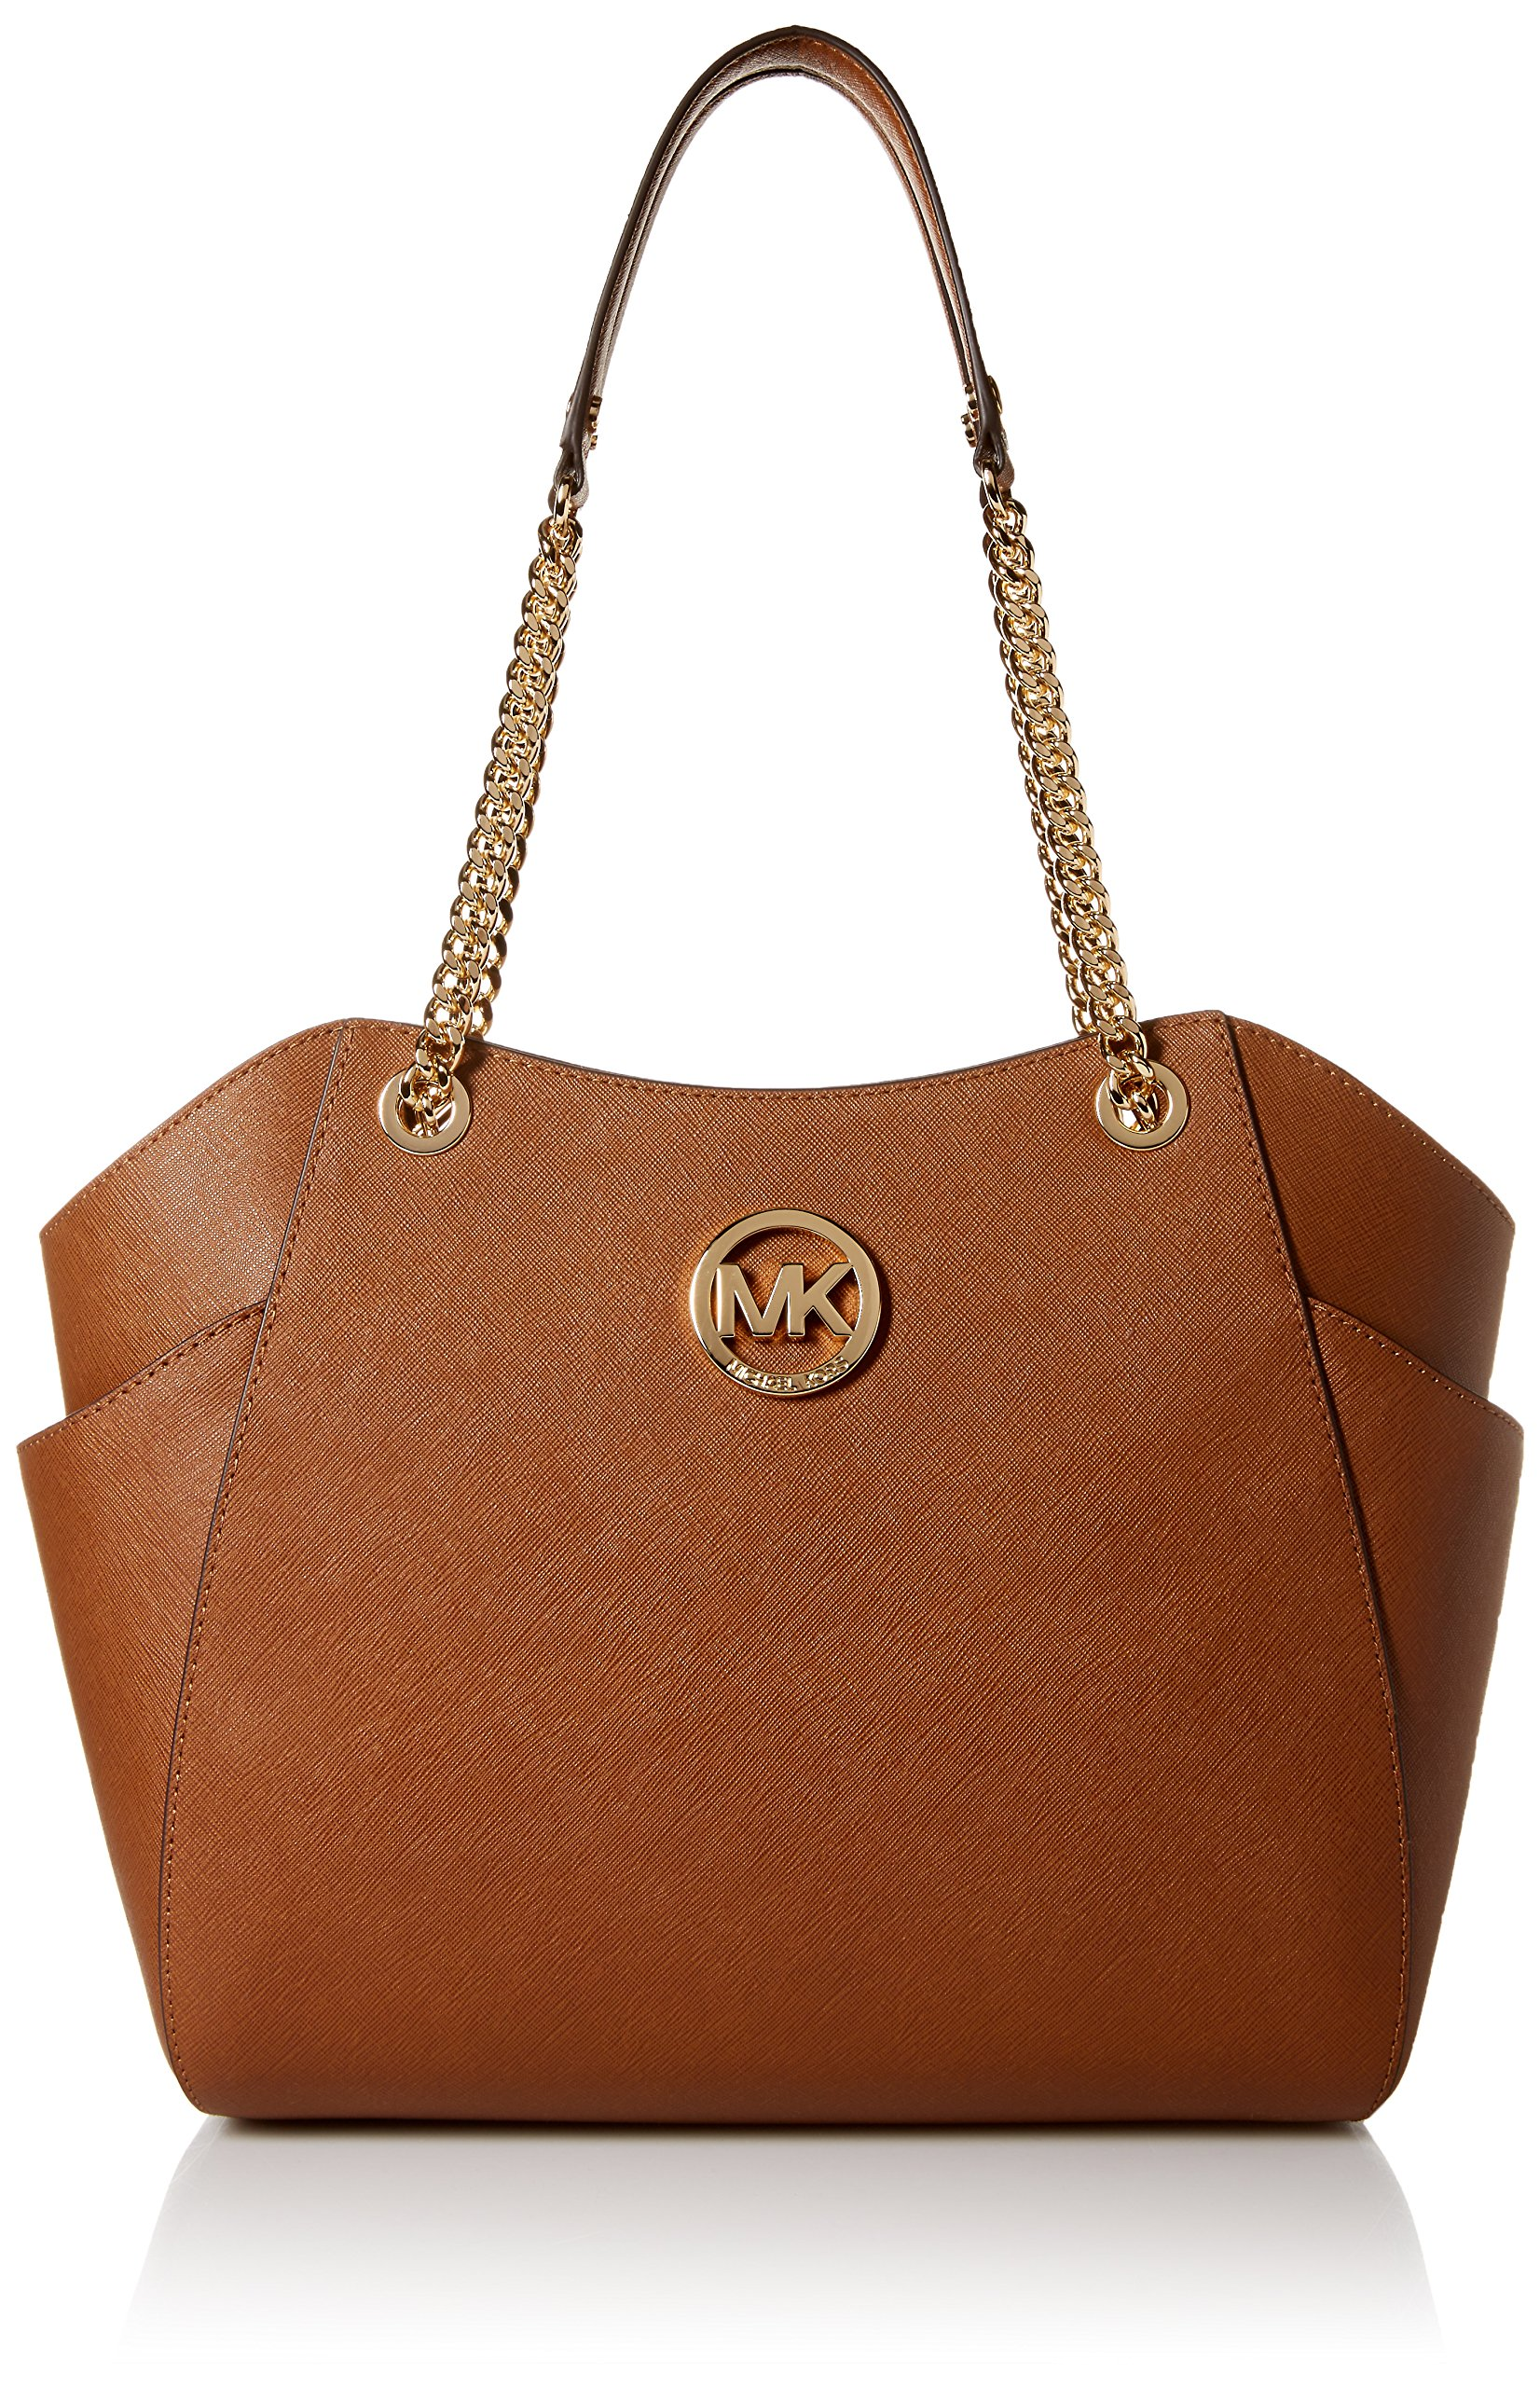 3fc5ad2bb6f Galleon - Michael Kors Jet Set Travel Large Chain Shoulder Tote - Luggage